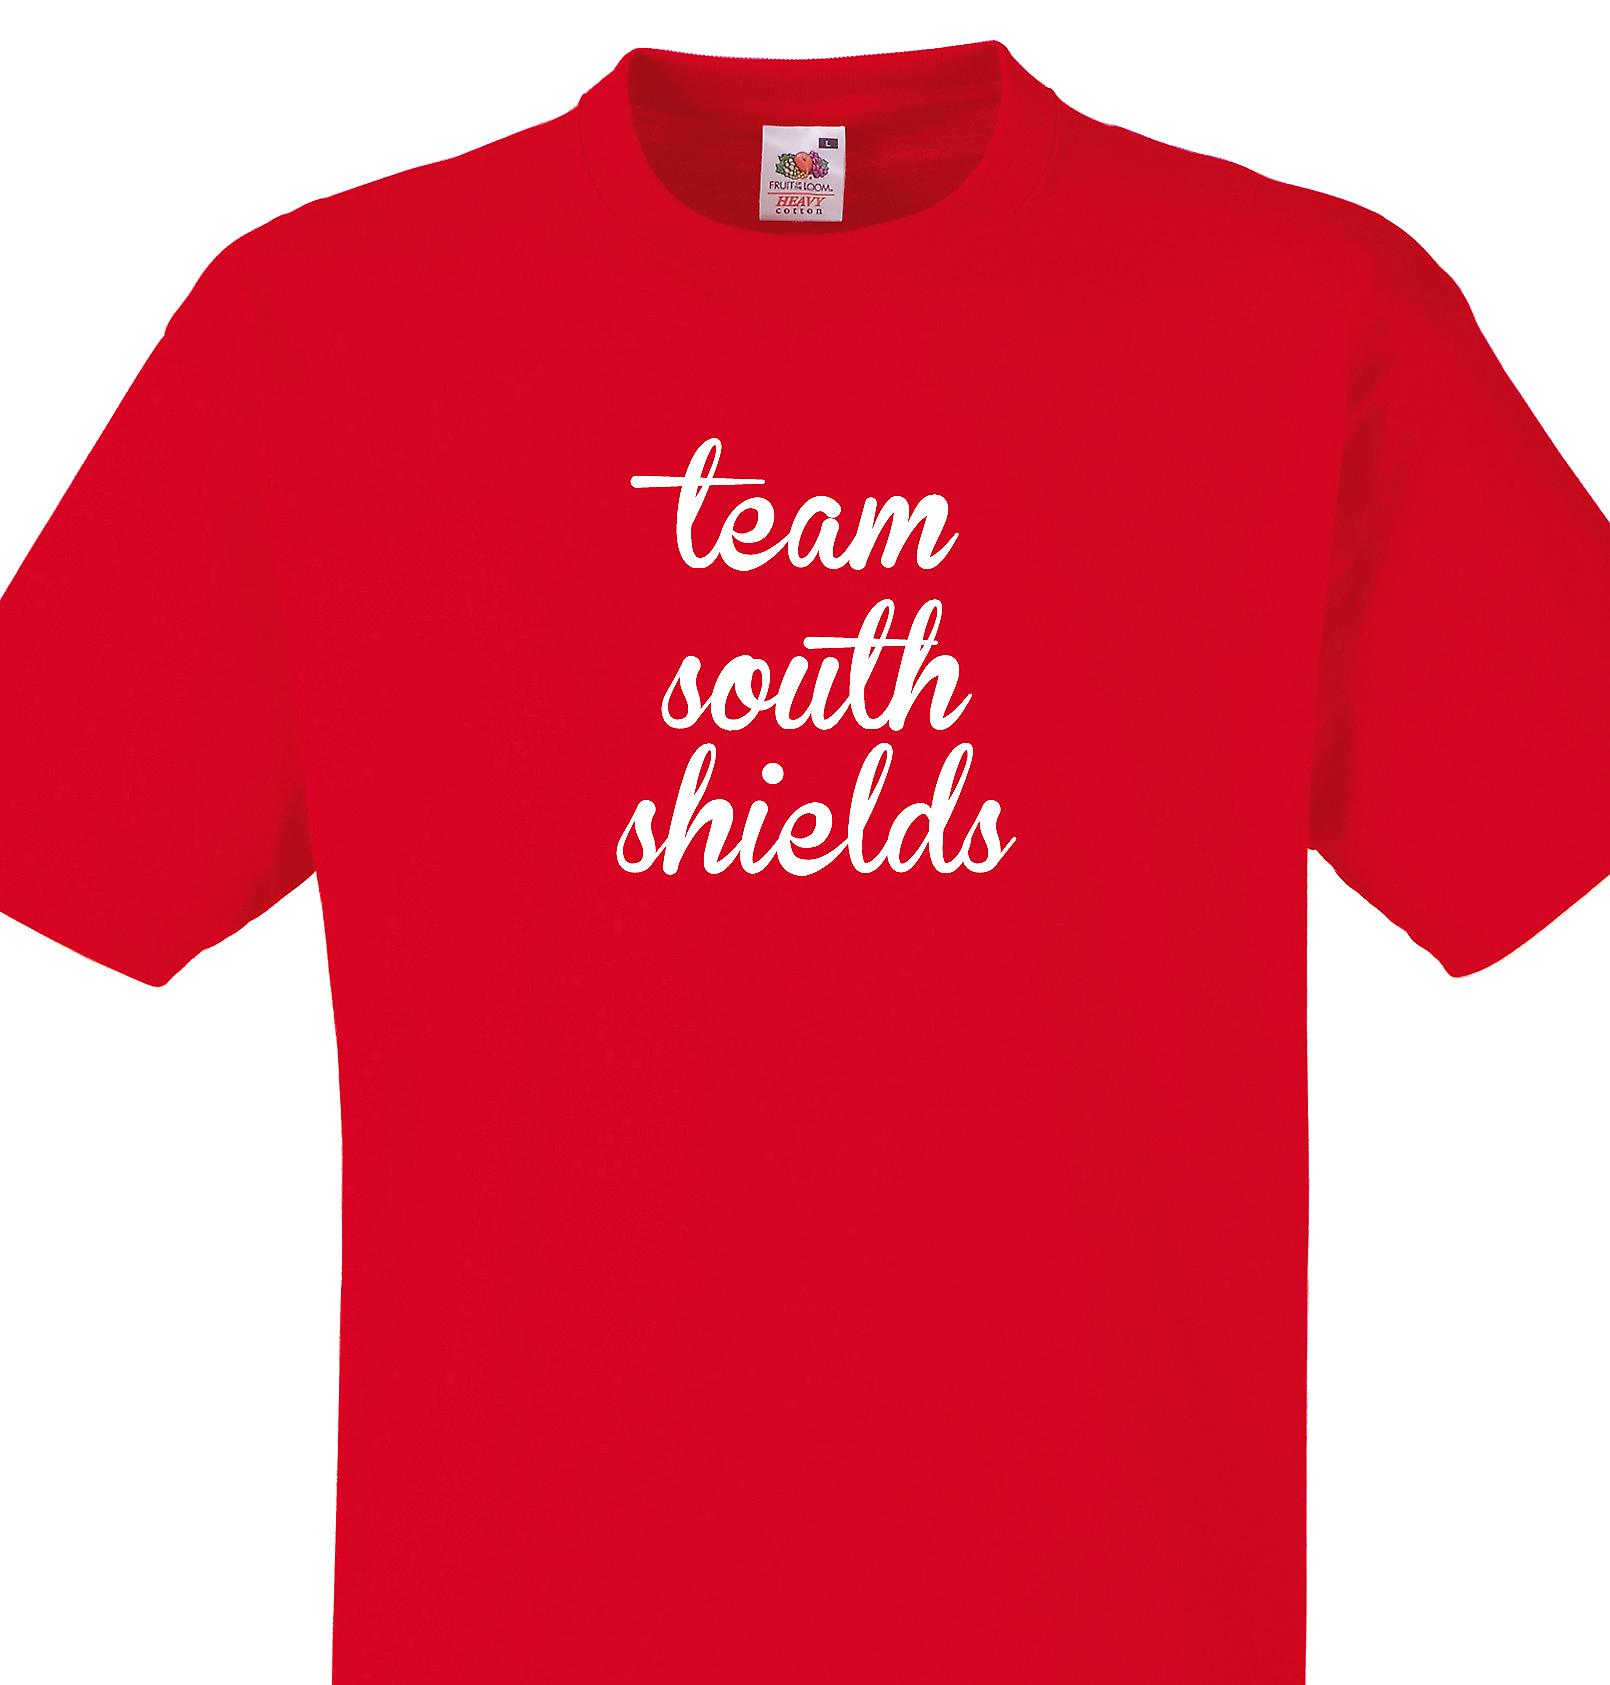 Team South shields Red T shirt